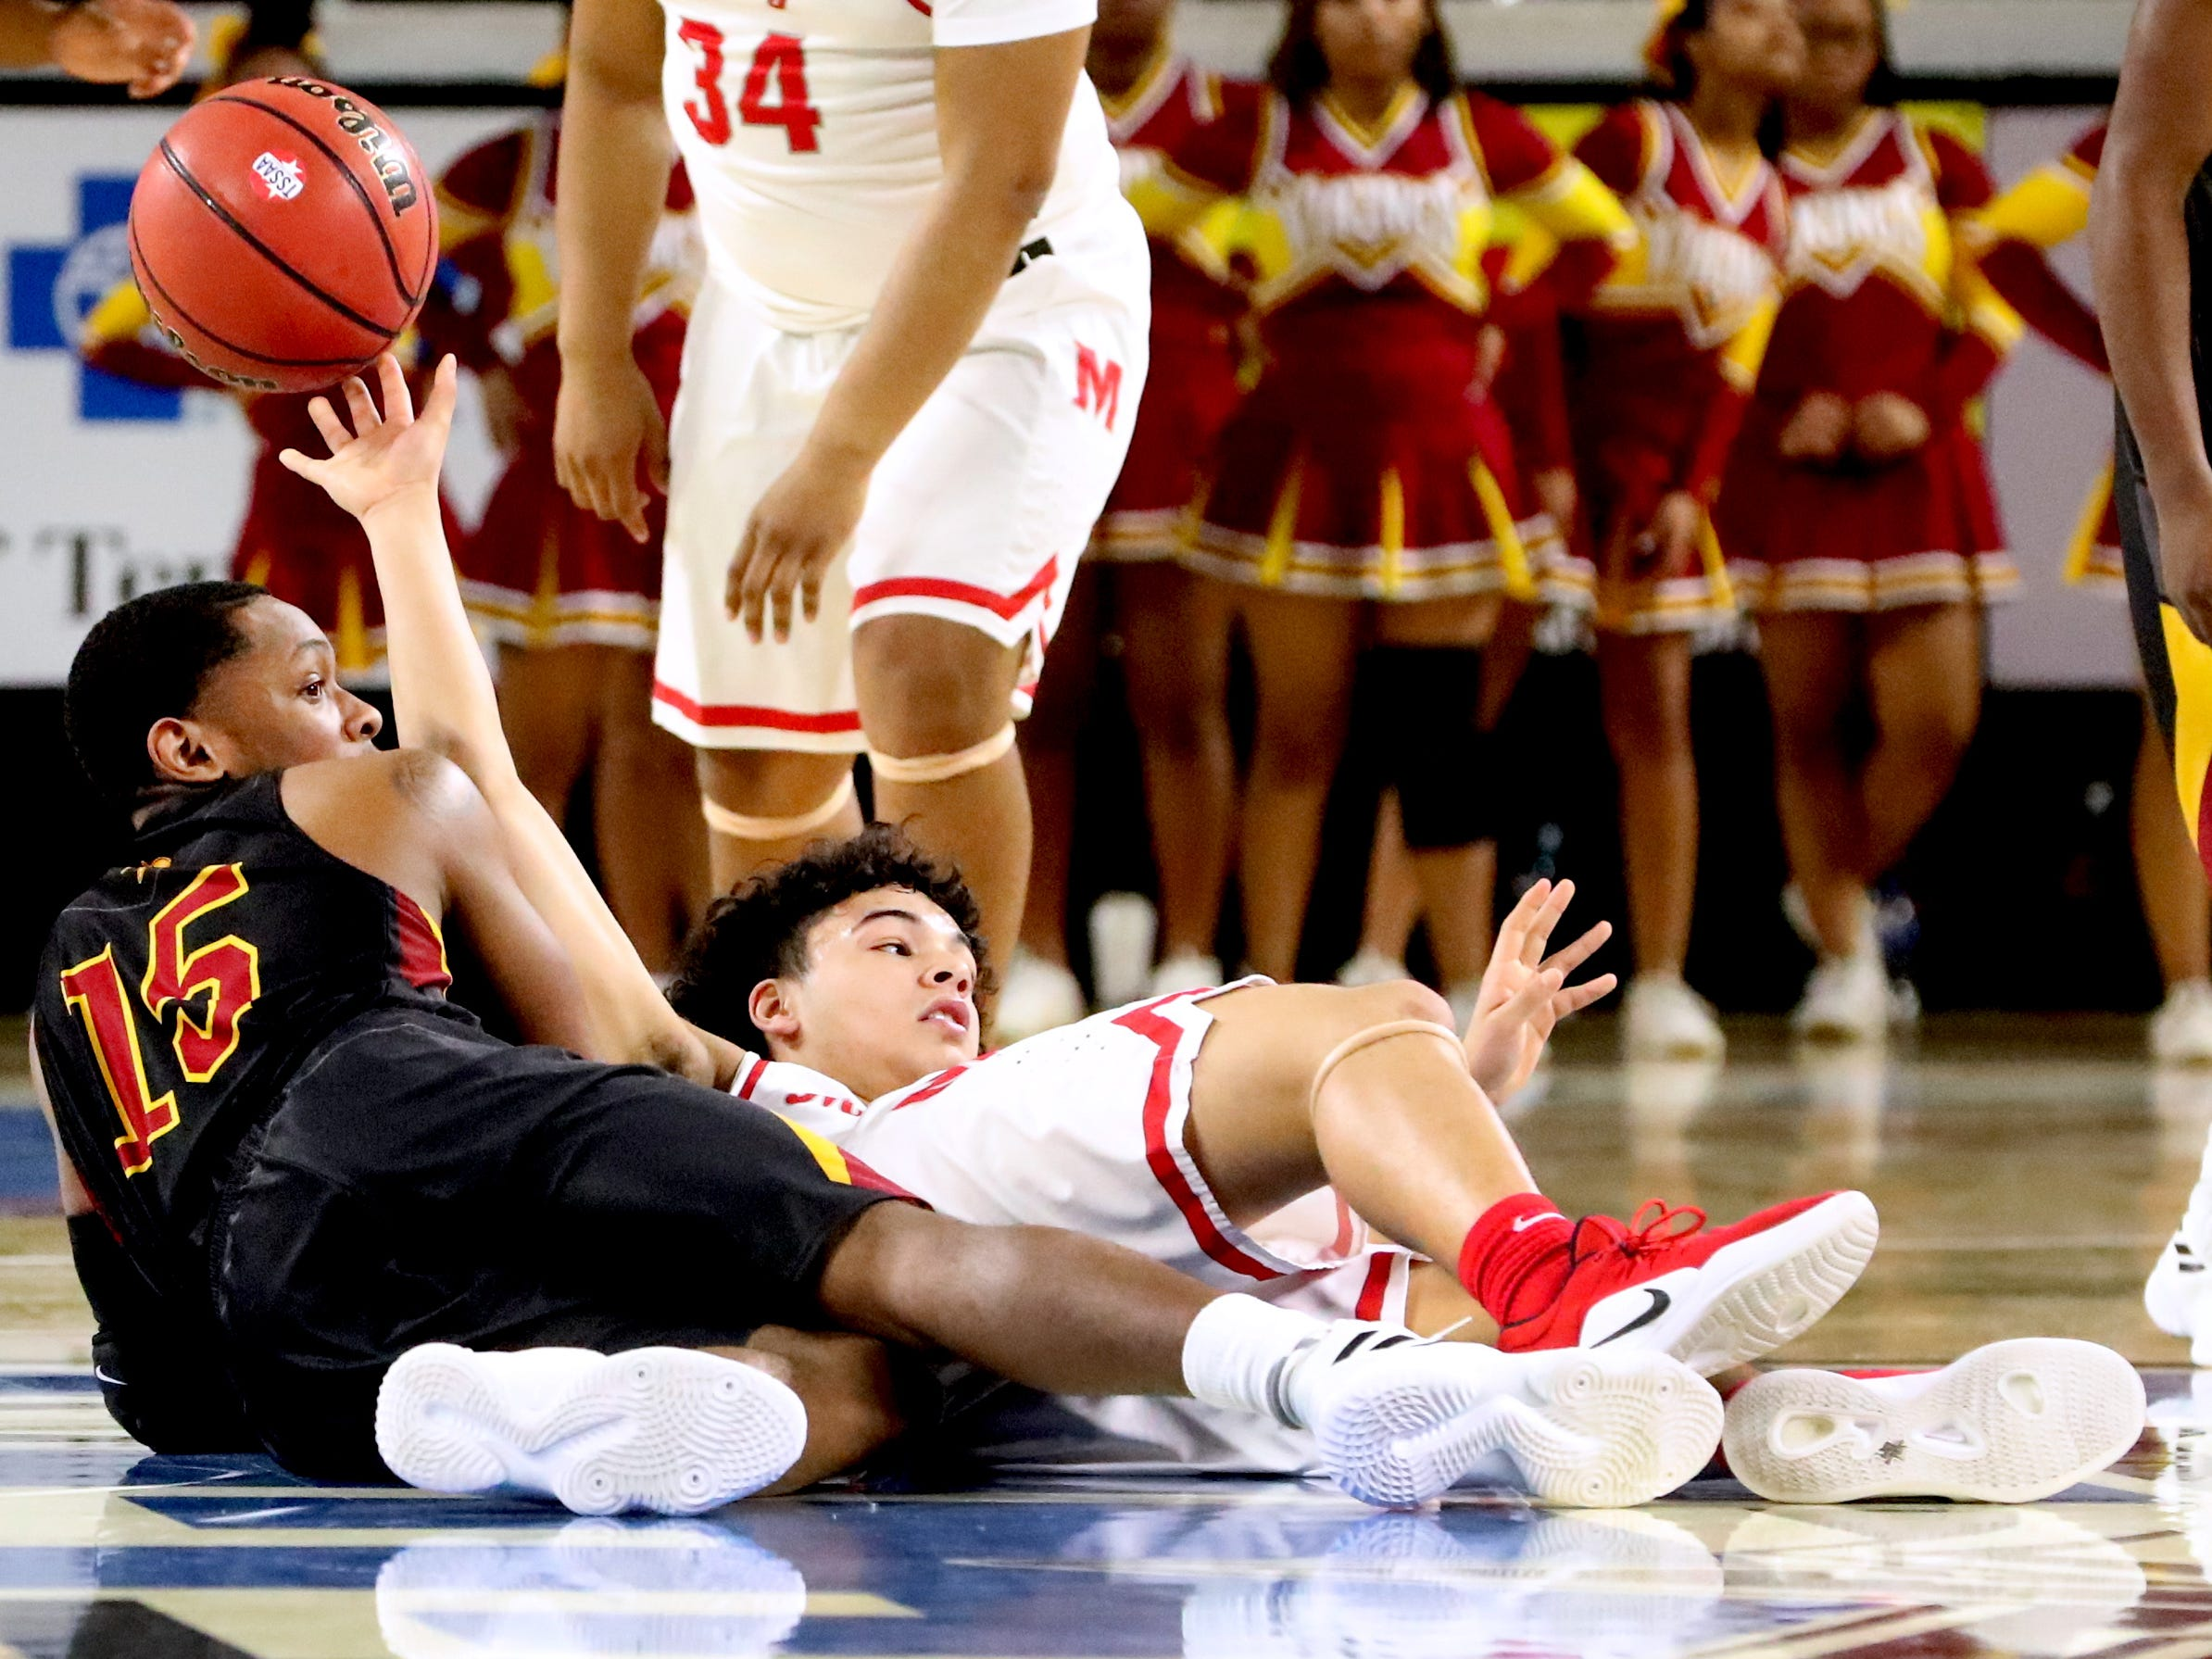 Humboldt's Malik Cox (15) and McKenzie's Lucas King (1) fall to the floor as King brings the ball up court during the semifinal round of the TSSAA Class A Boys State Tournament, on Thursday, March 15, 2019, at Murphy Center in Murfreesboro, Tenn.